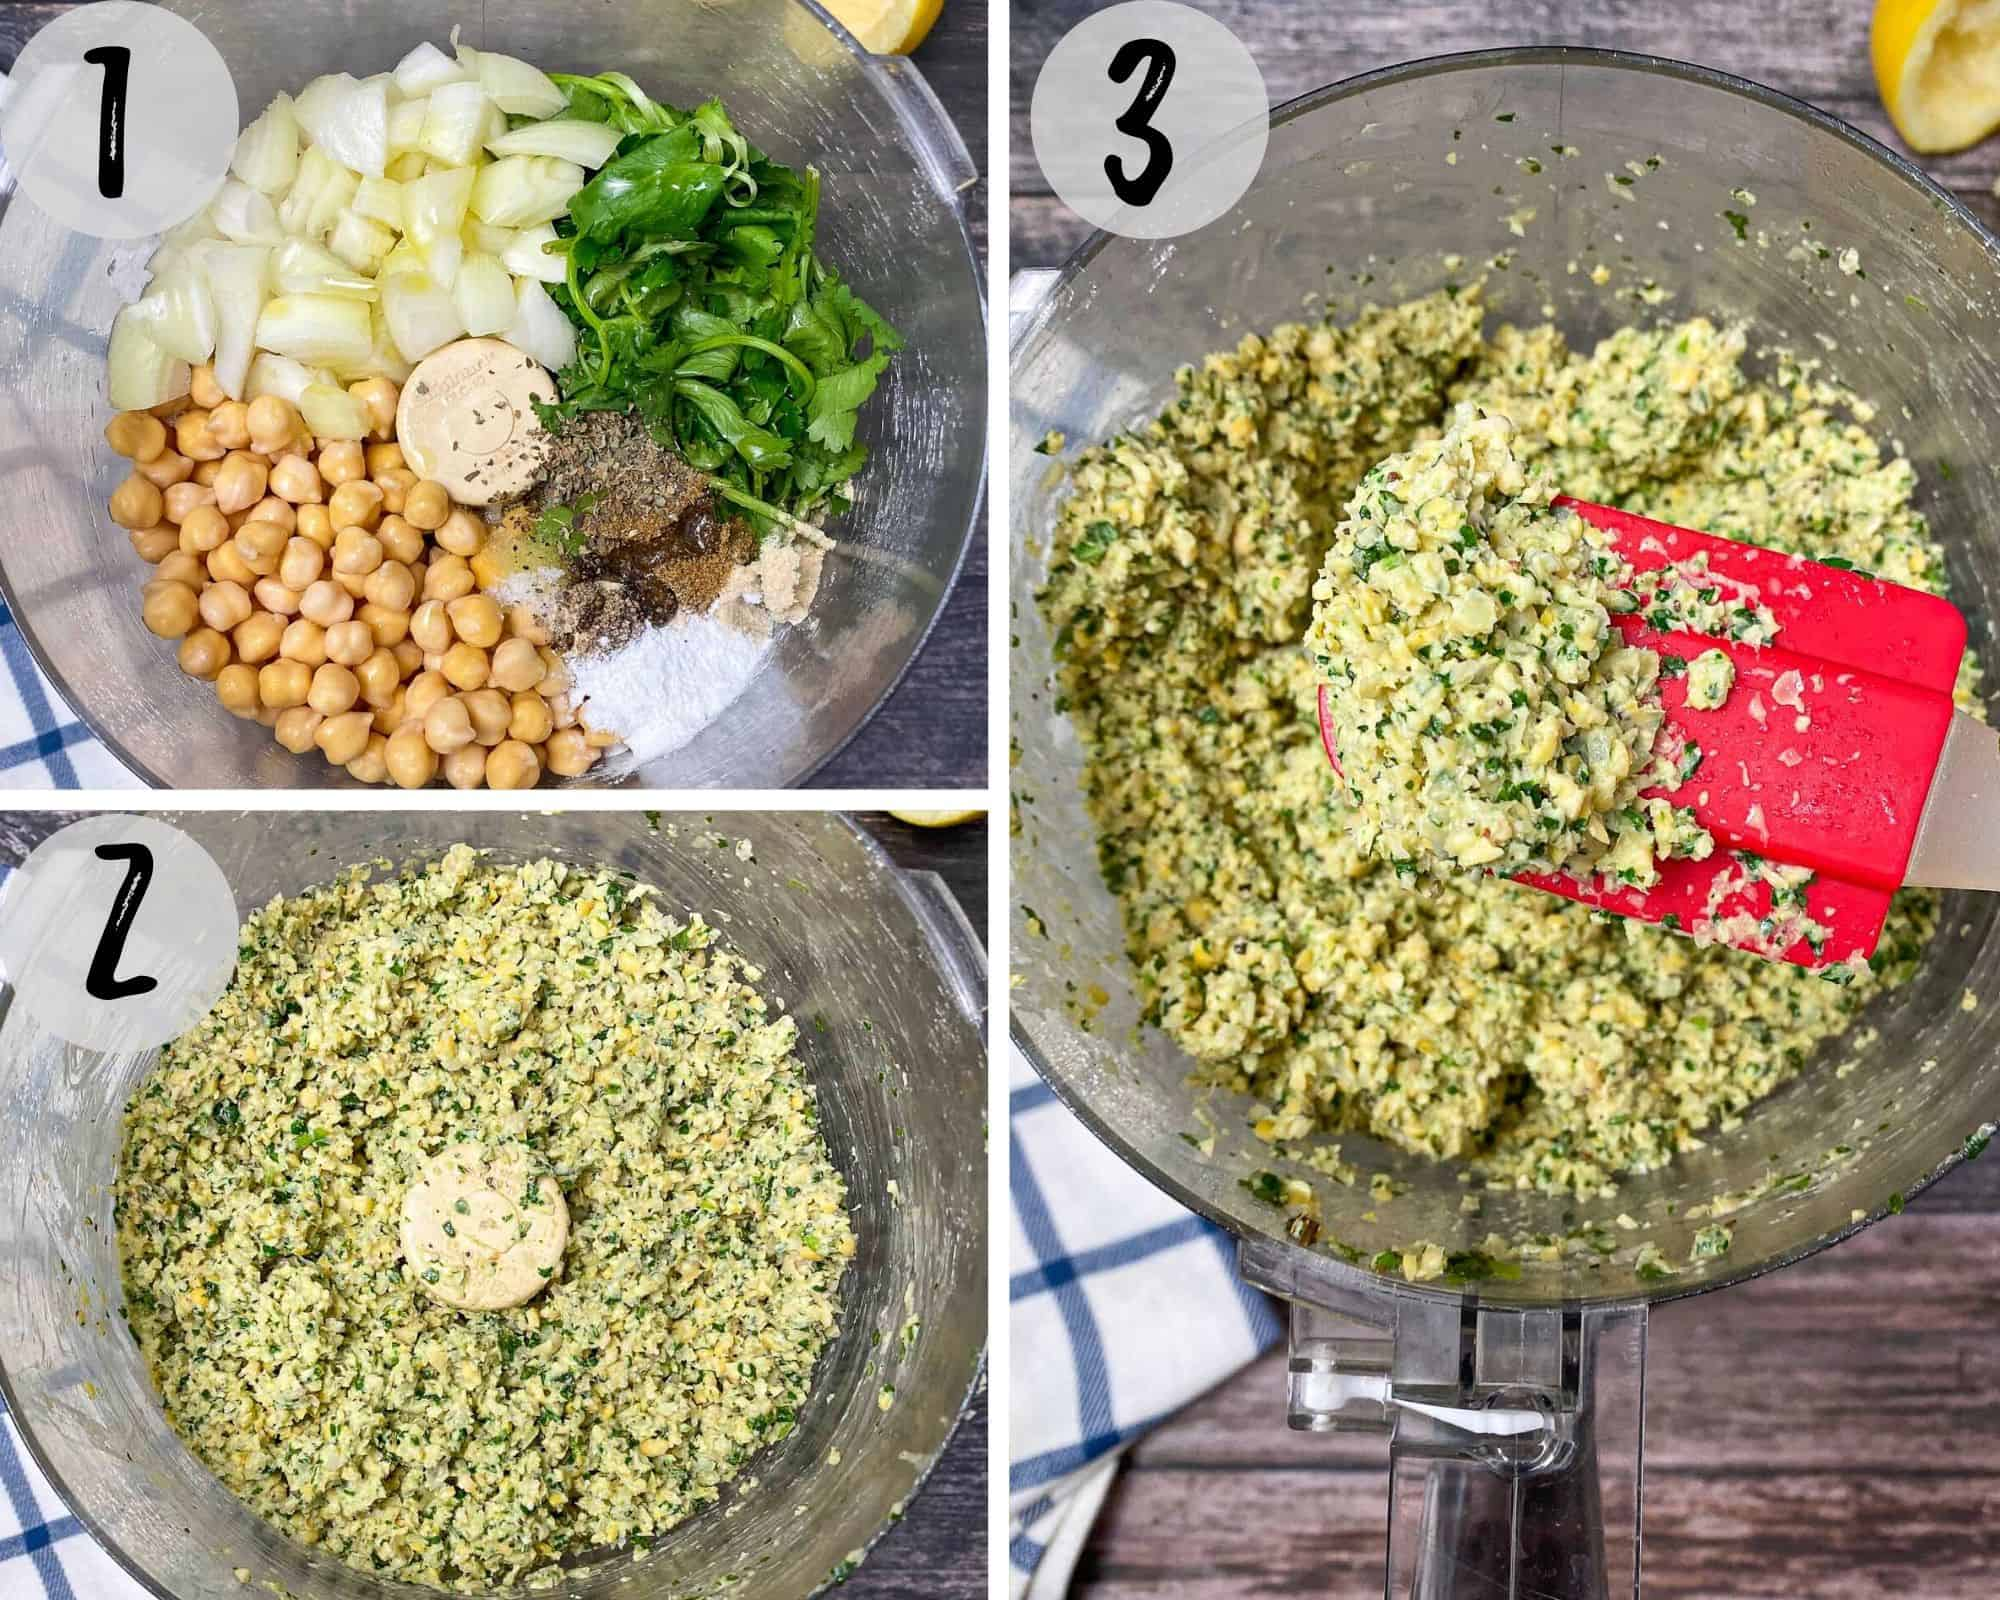 food processor with chickpeas, seasoning, onion and cilantro being processed into a crumbly mixture